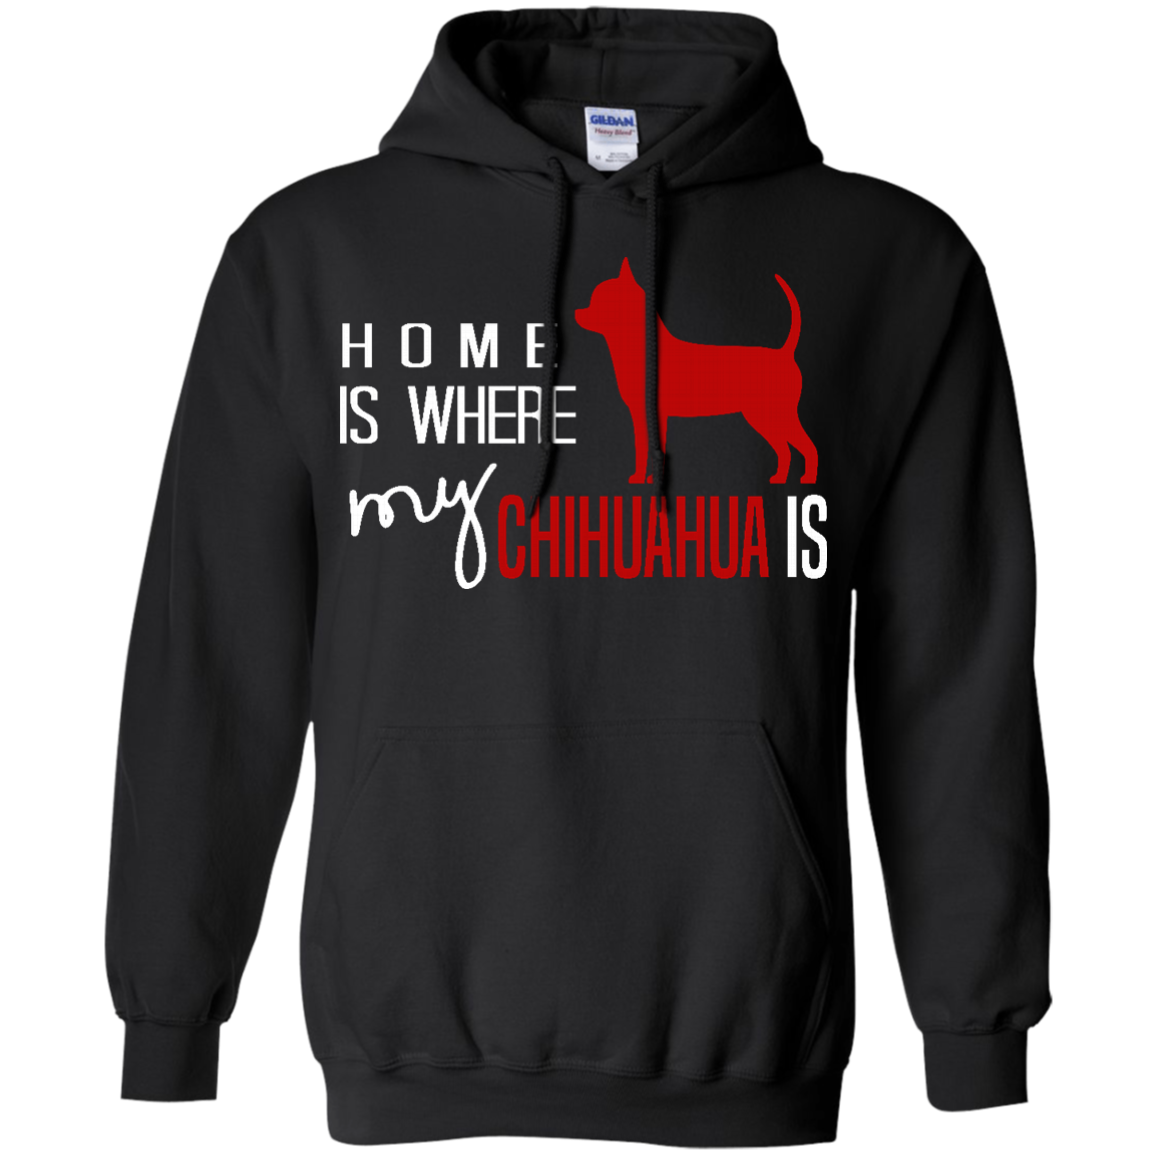 Chihuahua Dog Hoodie Home is Where My Chihuahua Is like as a gift for who loves Chihuahua  yourself  friends on birthday  christmas or Occasions